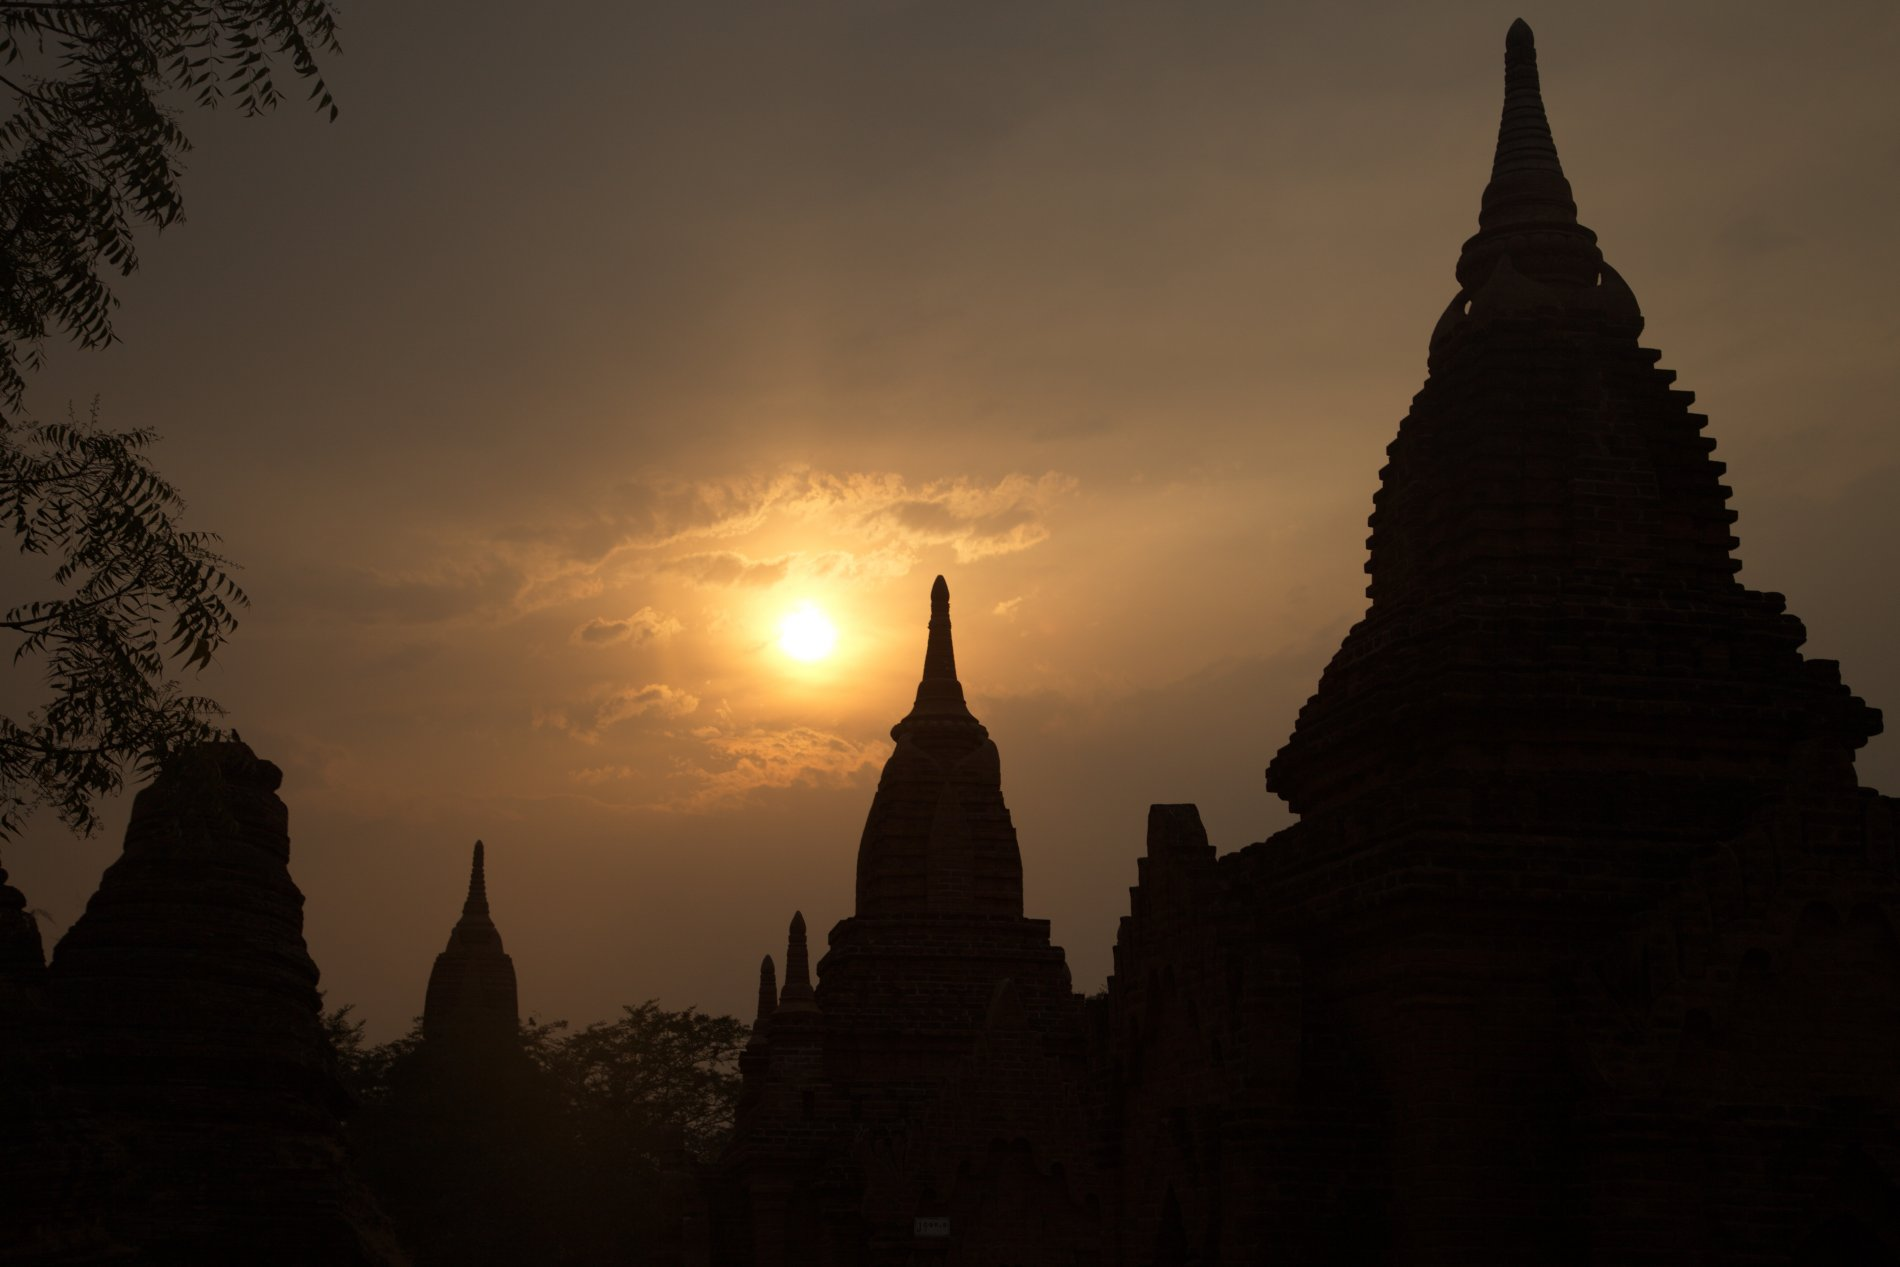 Bagan_165.jpg-commment